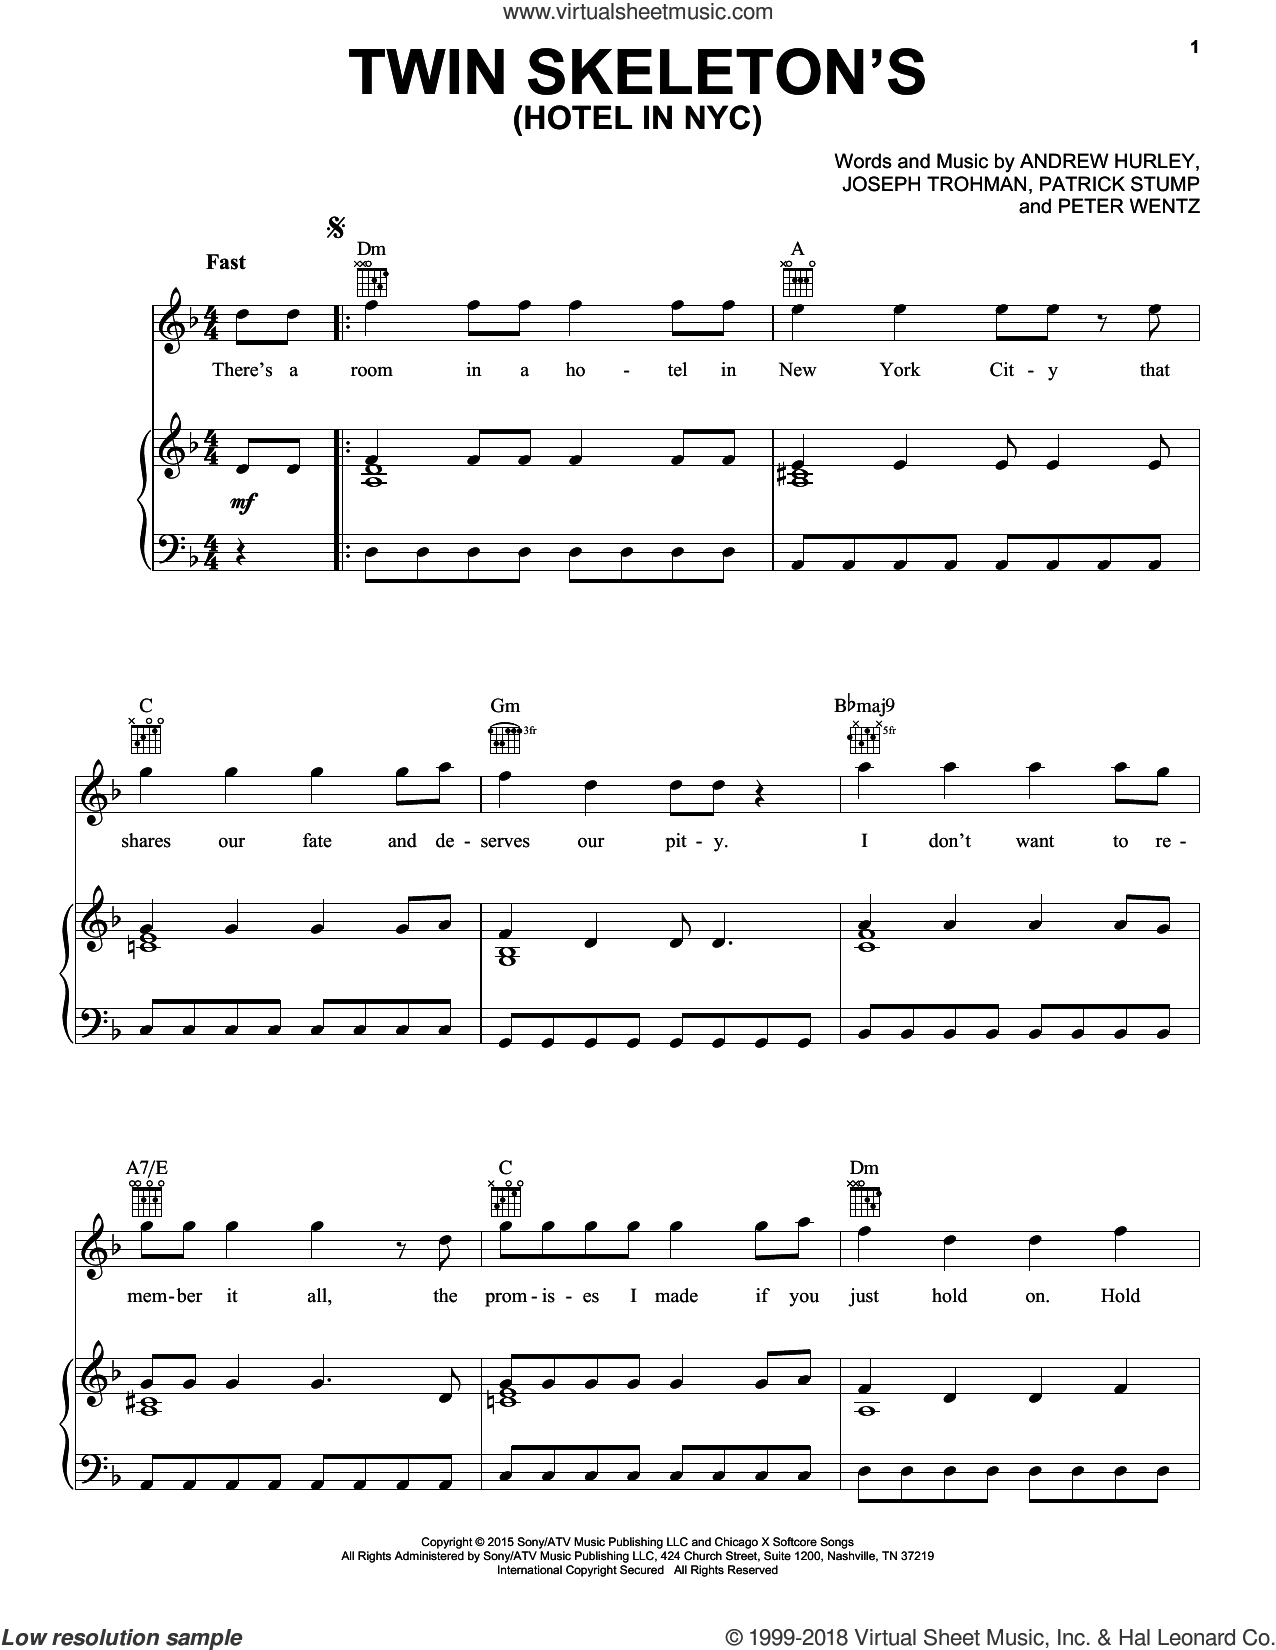 Twin Skeleton's (Hotel In NYC) sheet music for voice, piano or guitar by Peter Wentz, Fall Out Boy and Andrew Hurley. Score Image Preview.